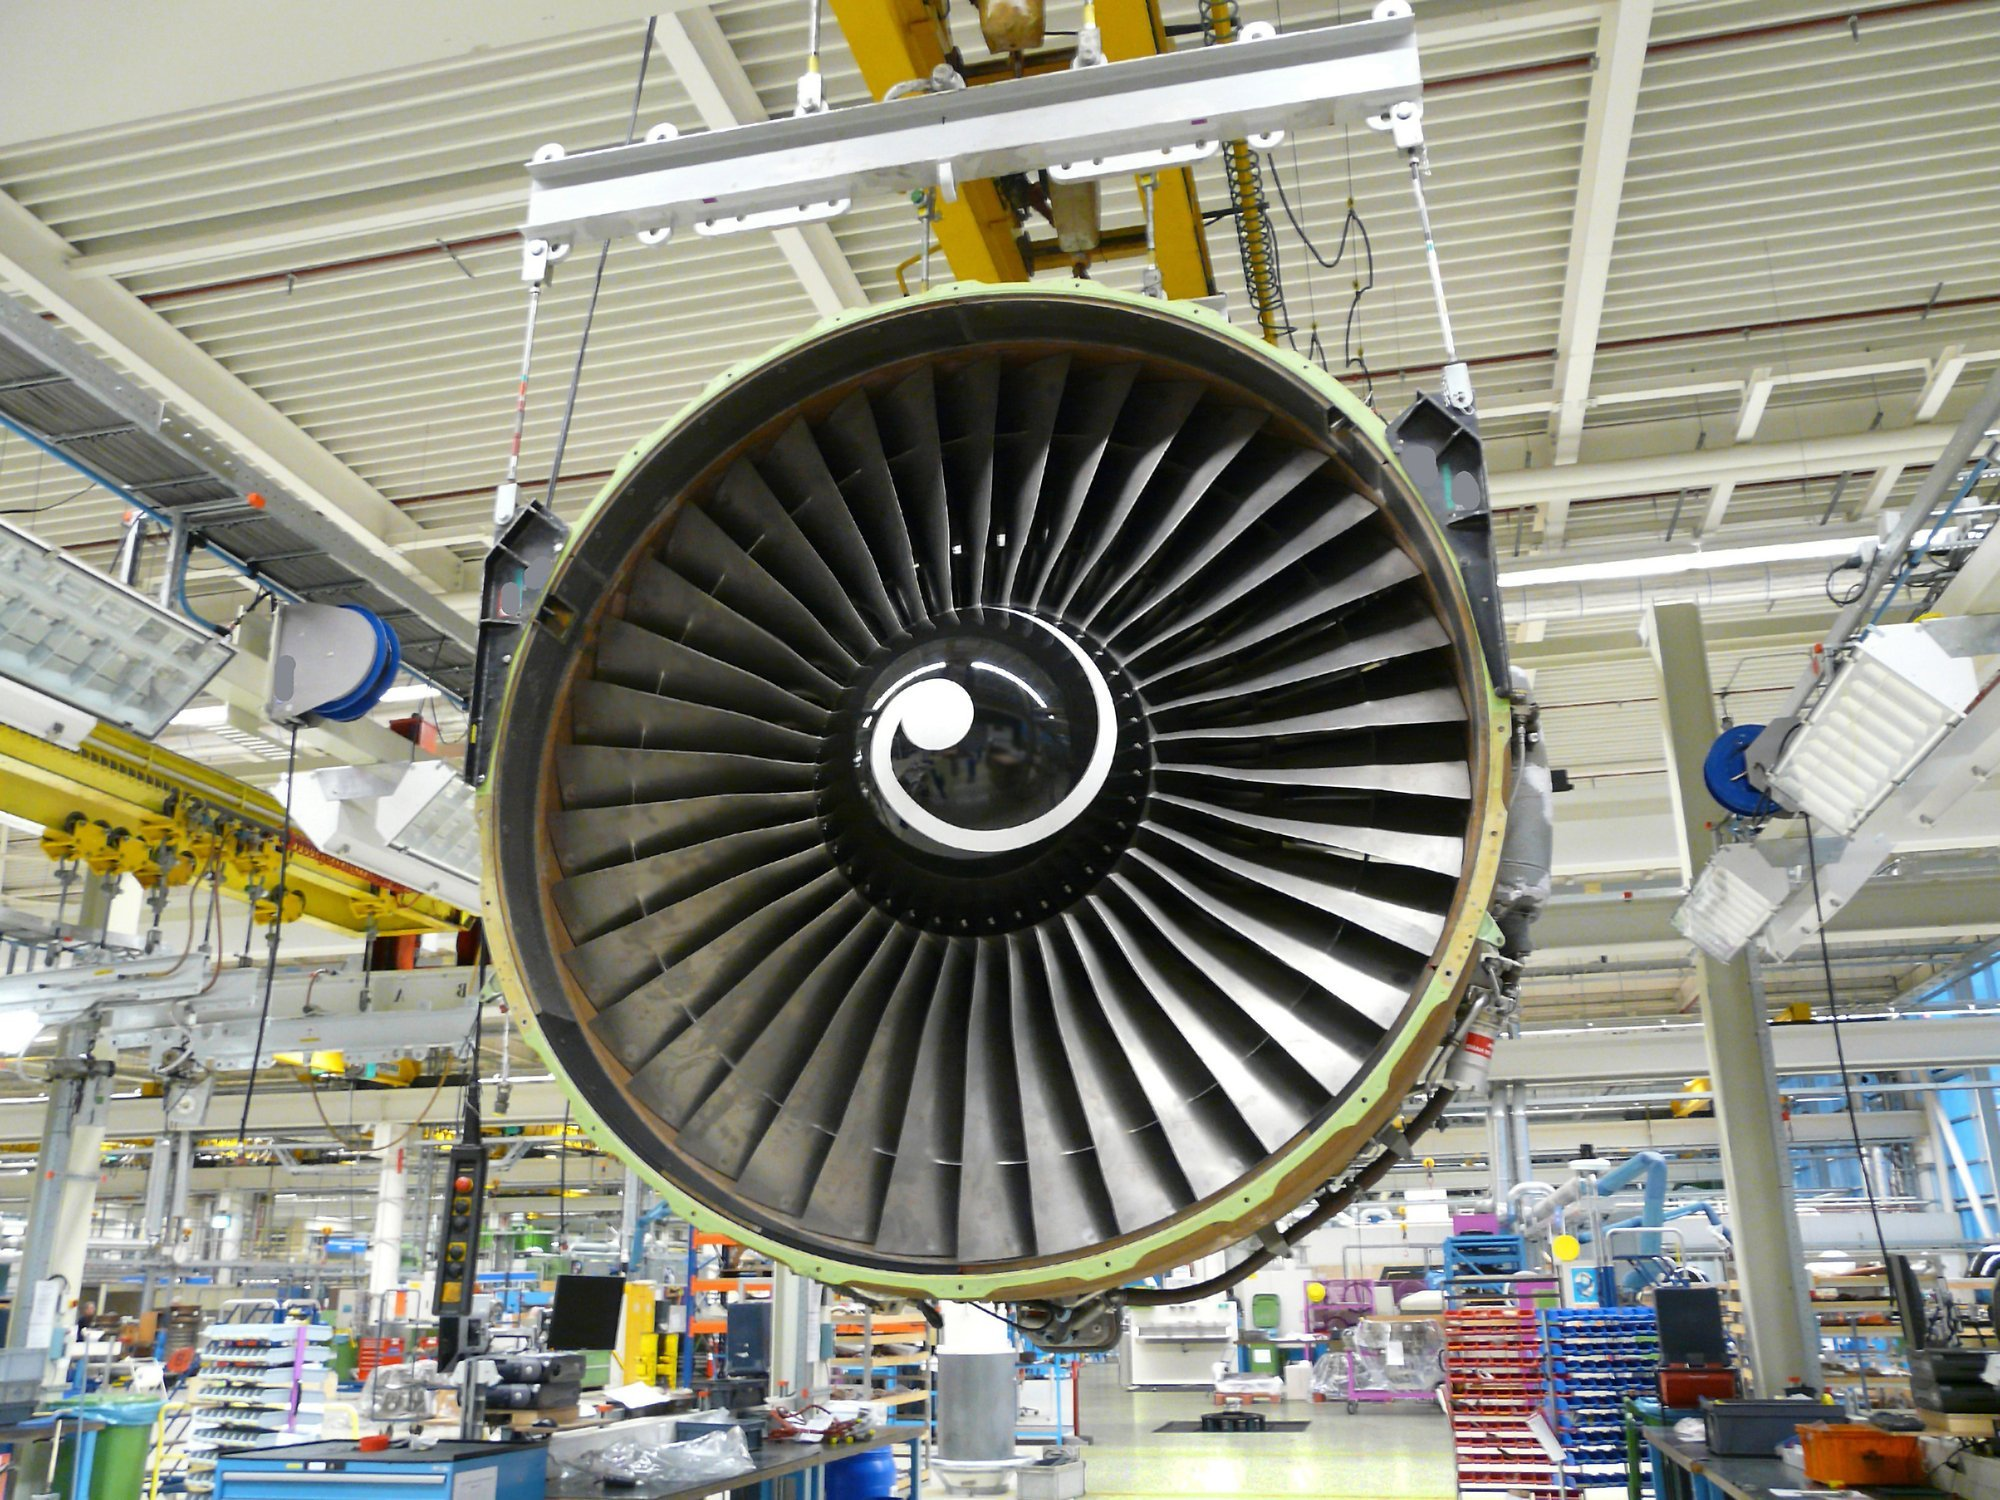 engine-aerospace-factory-manufacturing-Quebec-EDIWeekly